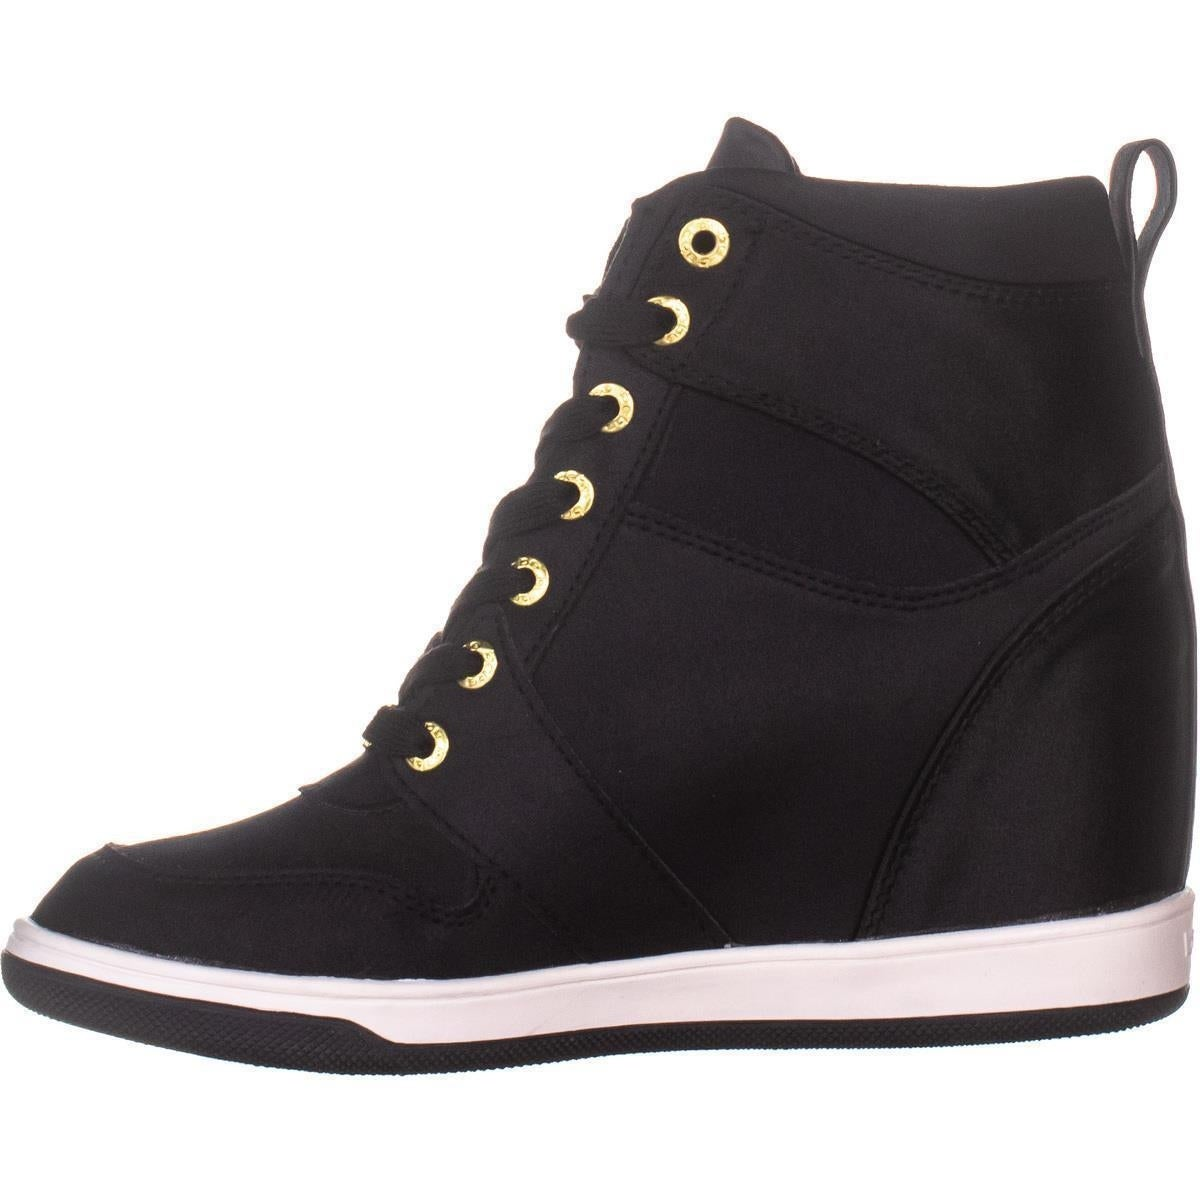 71d48fe9855 Shop Bebe Charlane Wedge Sneakers, Black - Free Shipping Today - Overstock  - 27347050